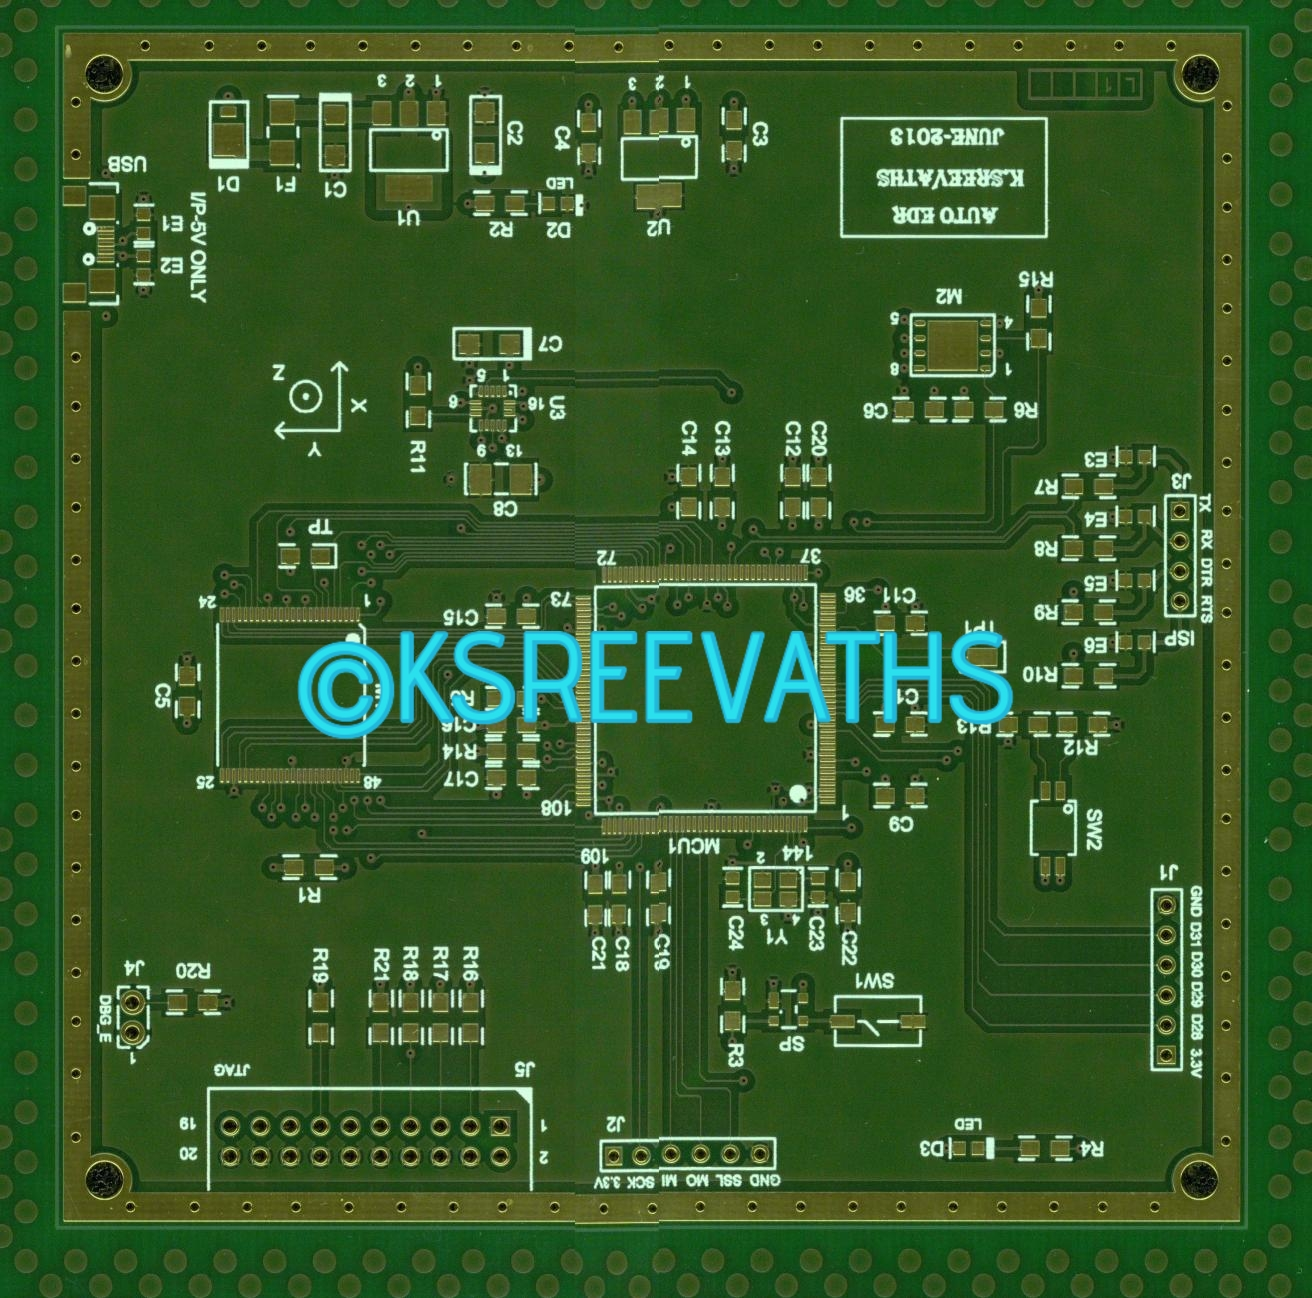 The Electronic Whizz May 2016 Circuit Board Assembly Multilayer Pcb For Automobile 4 A Layer Was Used To Reduce Emi Rfi Interferences Because Multi Can Better Protect High Speed Data Lines That Transfer